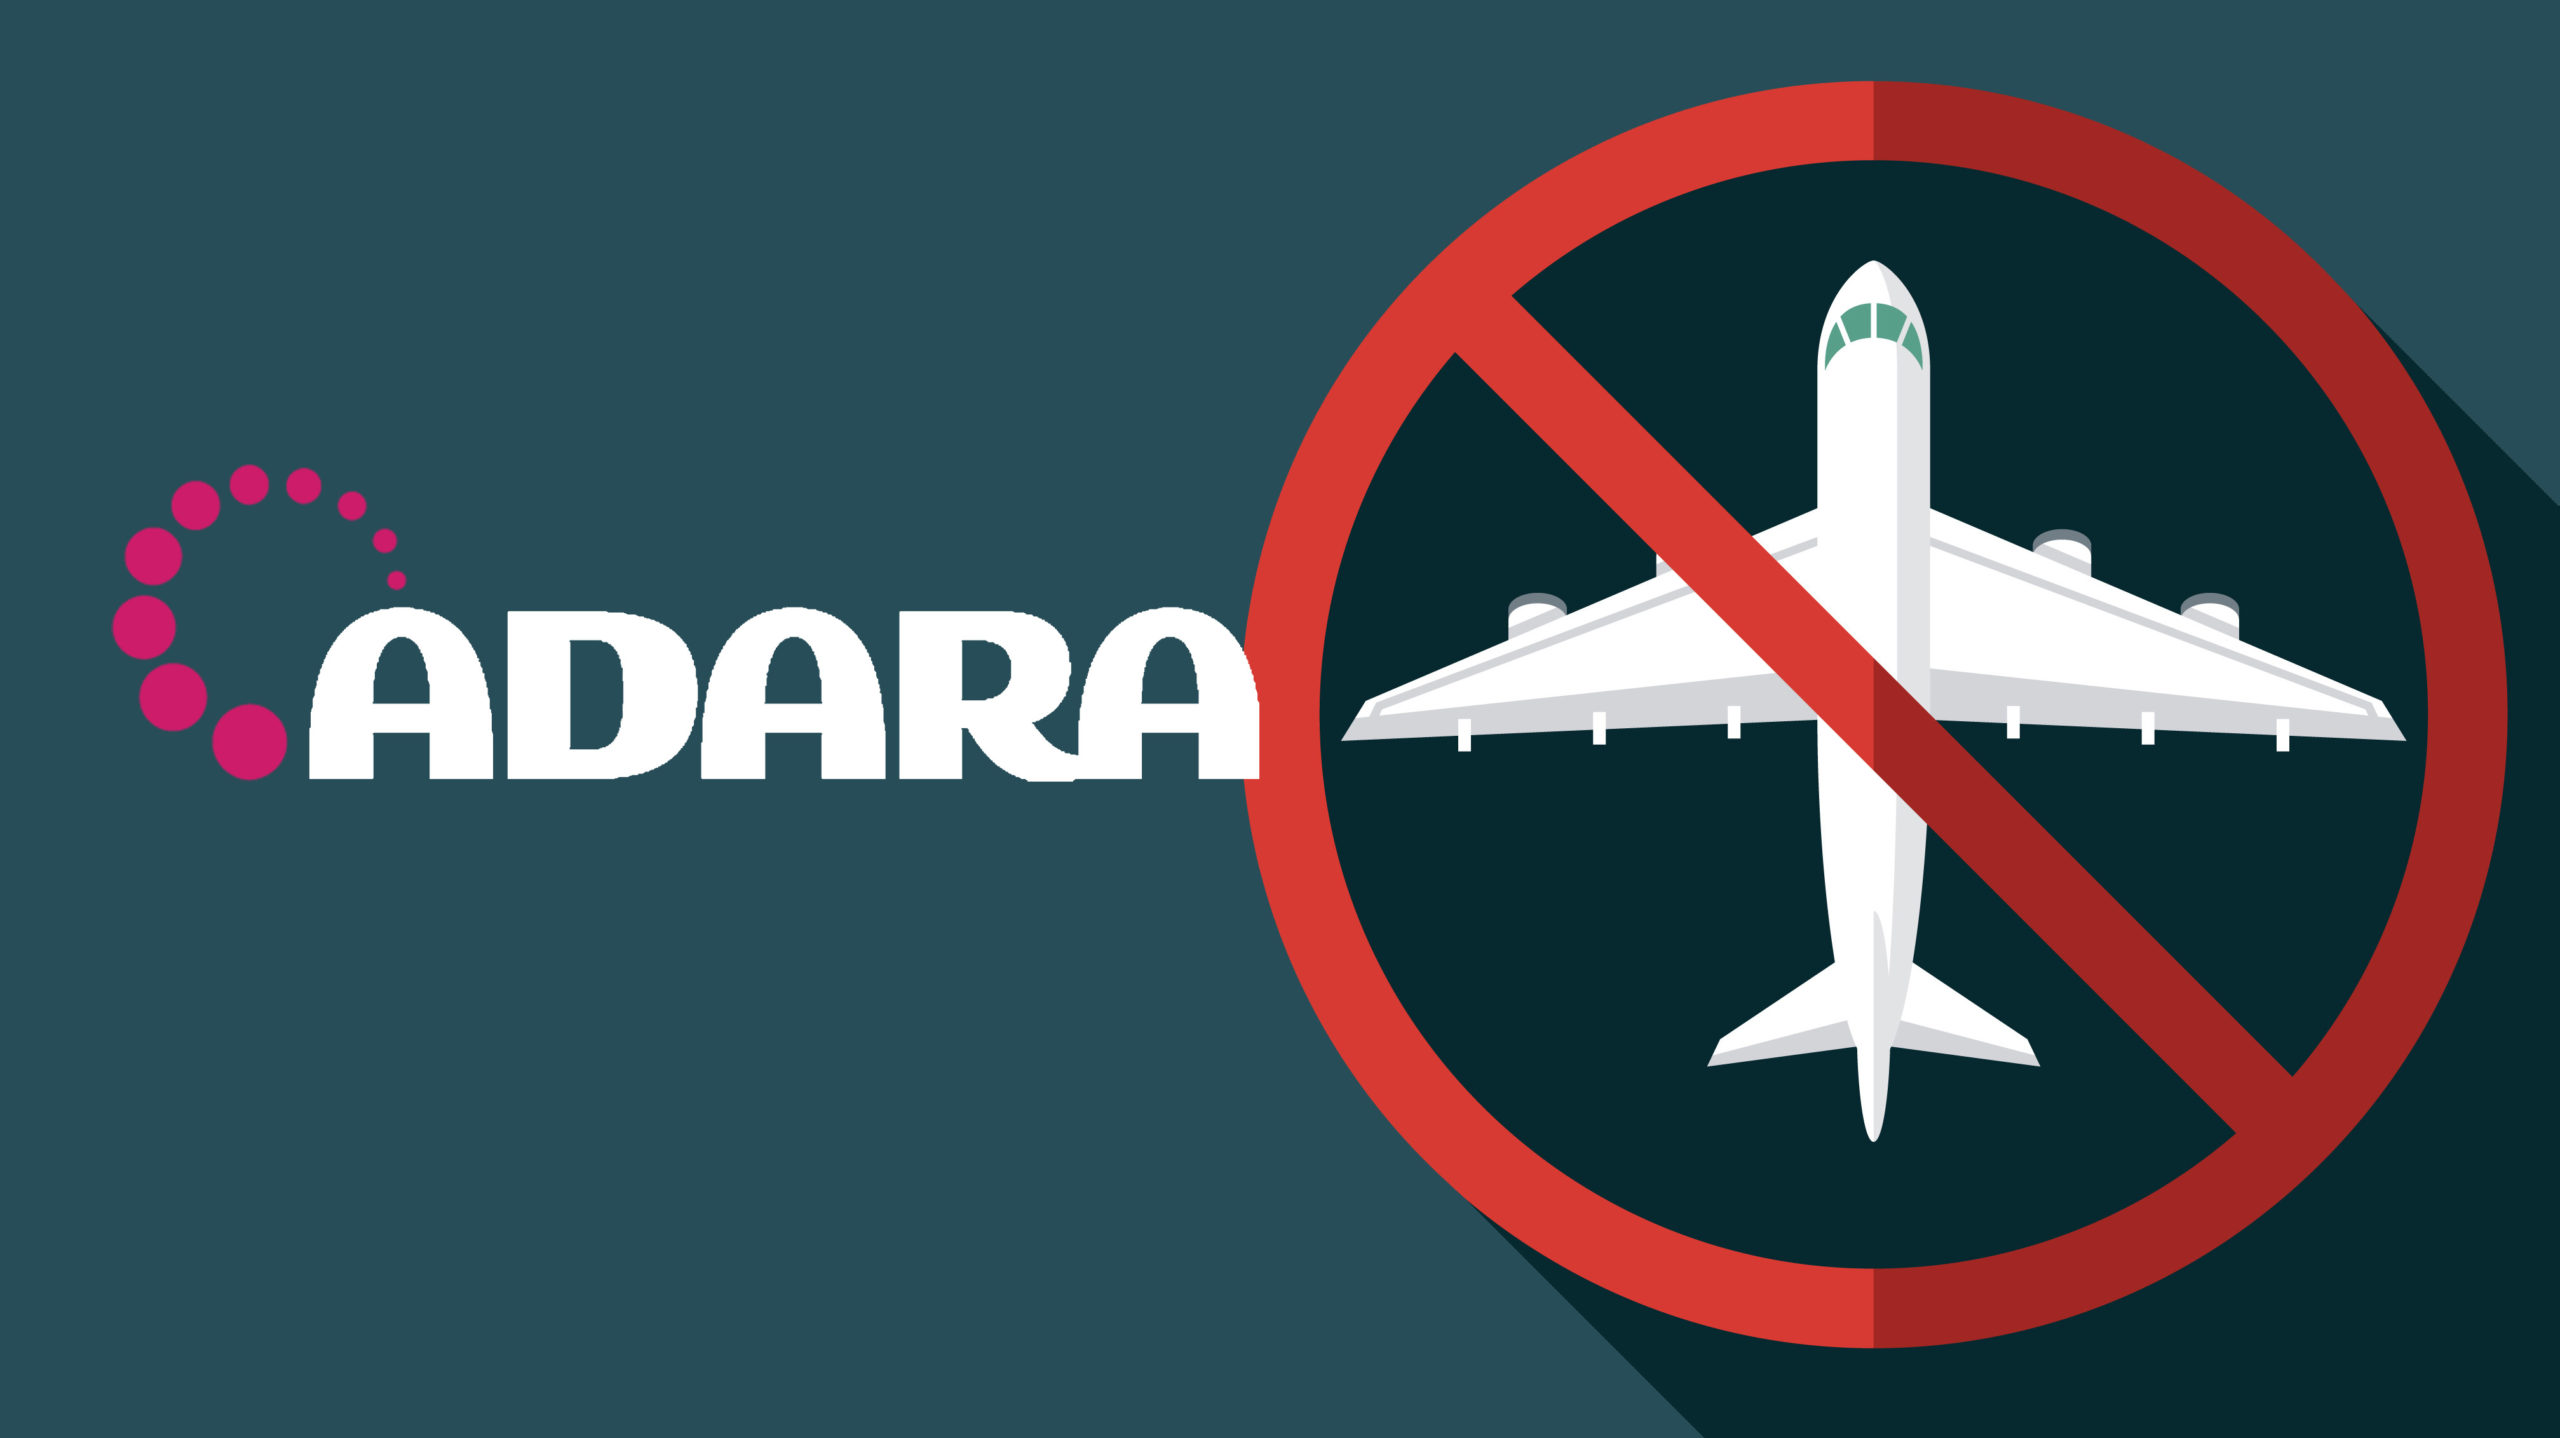 The Adara logo next to an illustration of an airplane with the no symbol over it